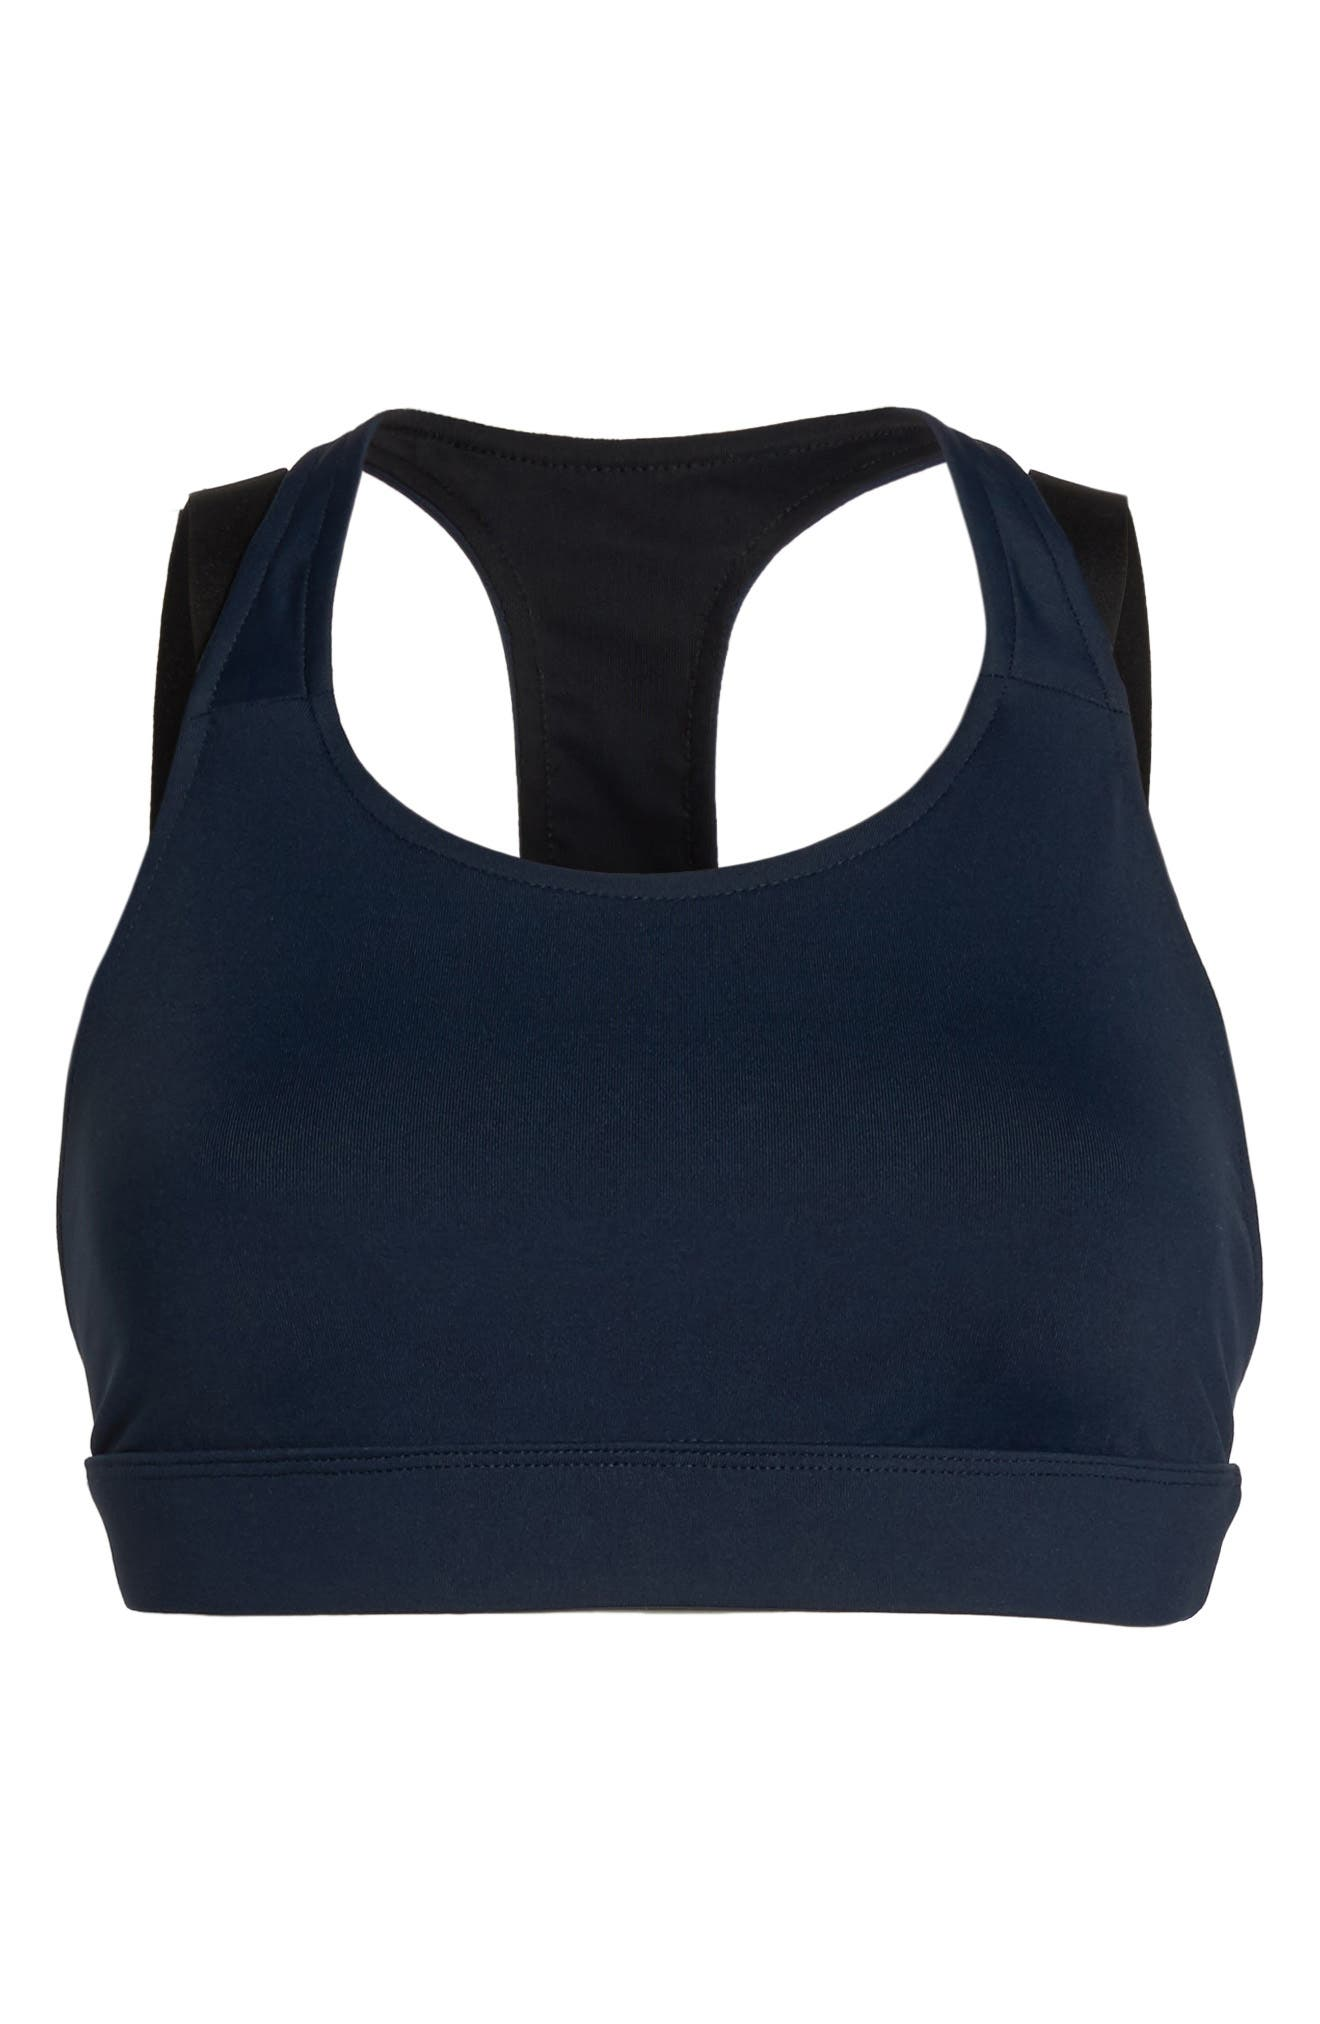 Forte Sports Bra,                             Alternate thumbnail 7, color,                             Midnight Blue/ Black